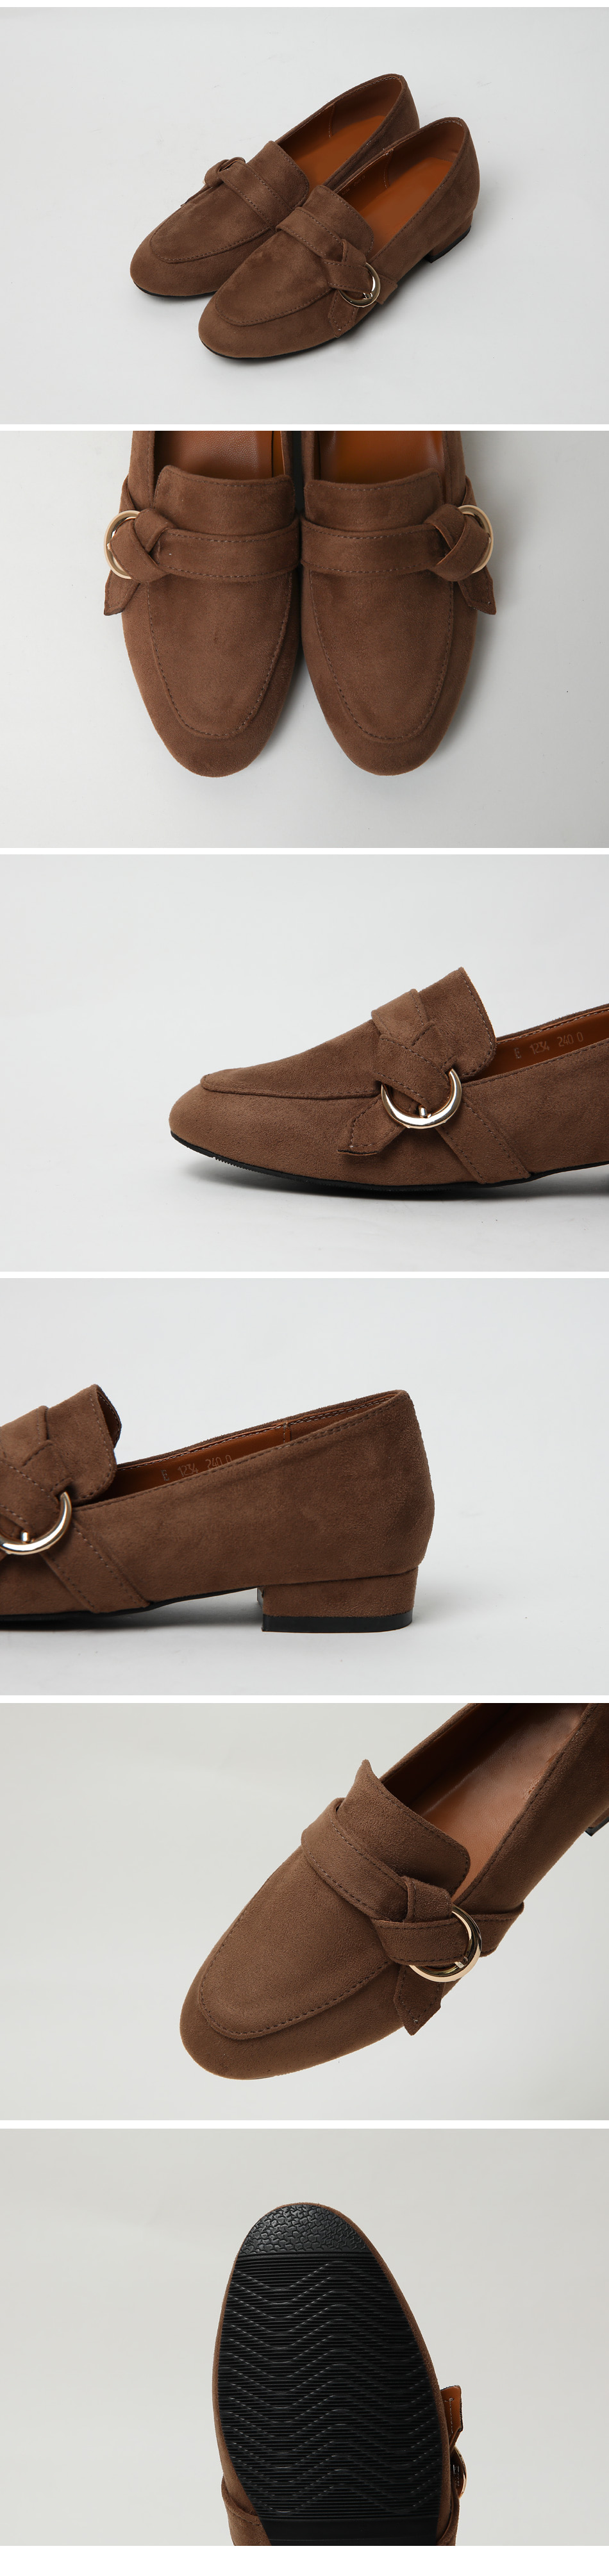 Le Calf Tall Loafers 3cm